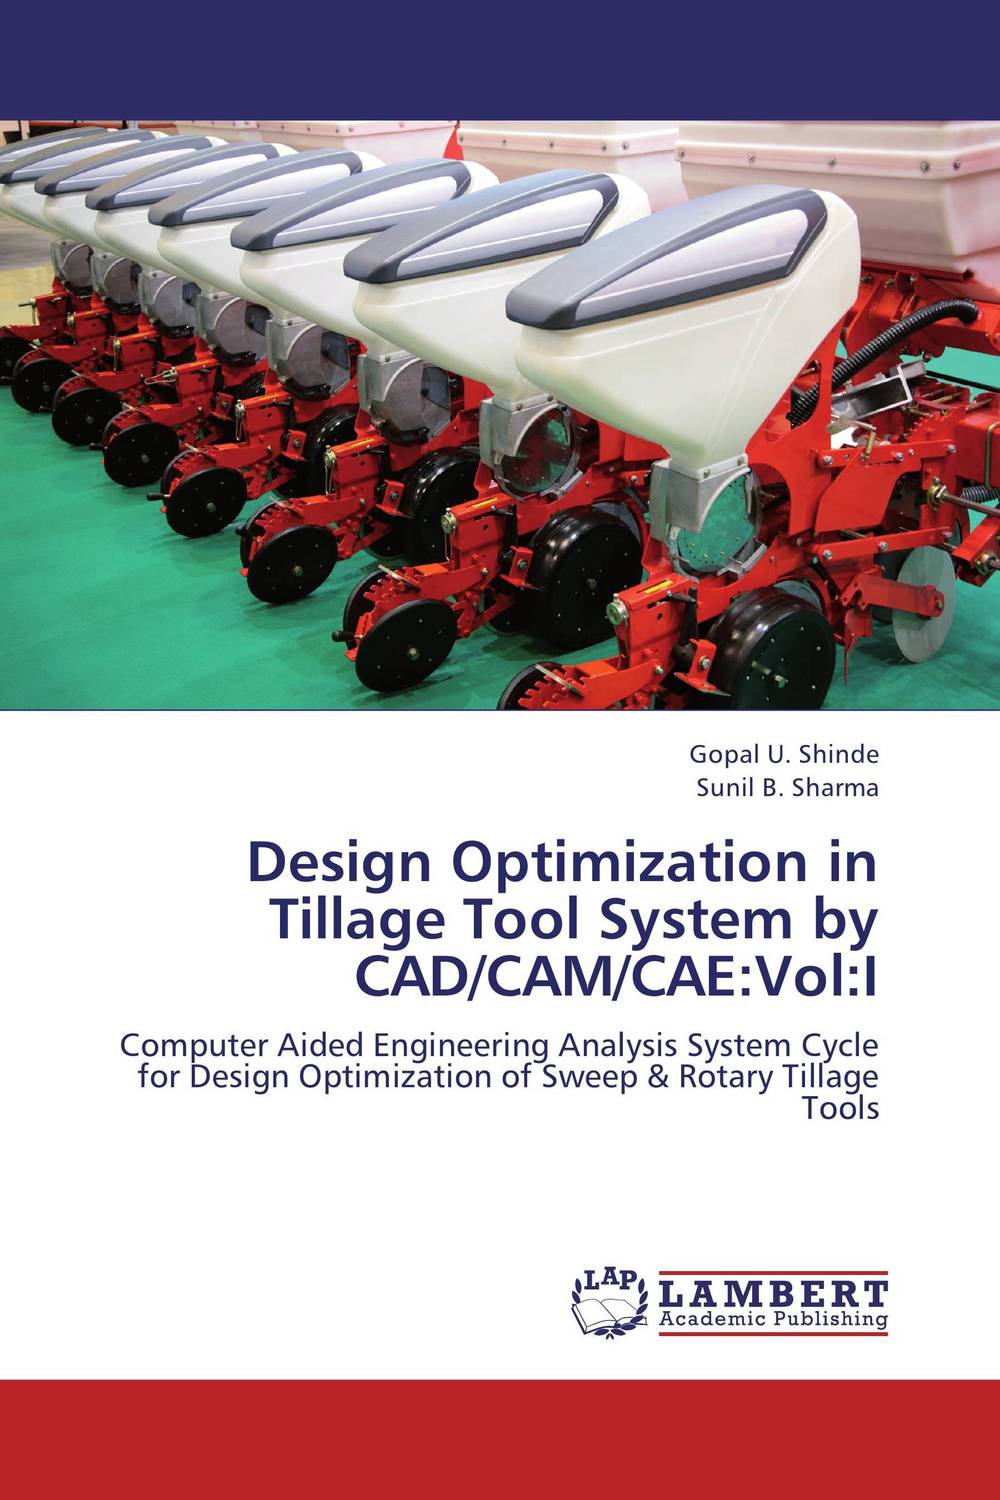 Design Optimization in Tillage Tool System by CAD/CAM/CAE:Vol:I цена